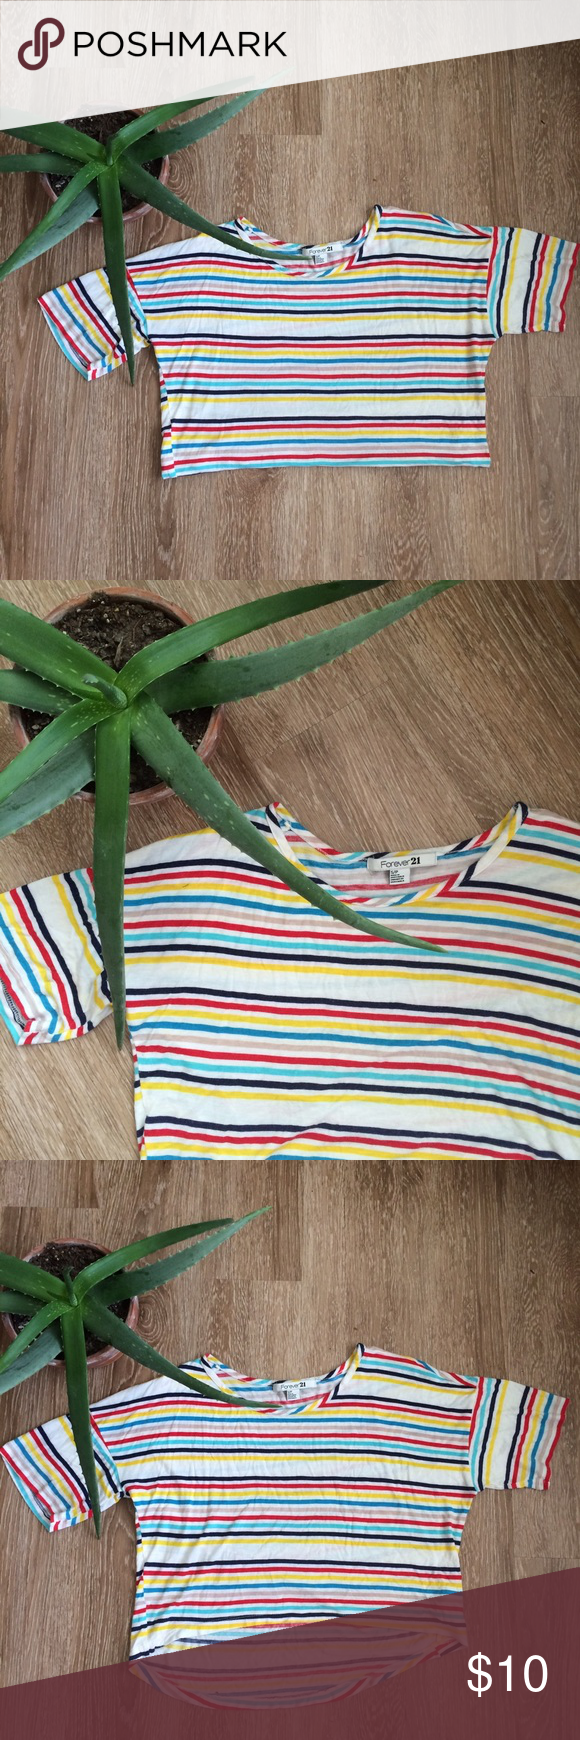 Forever 21 | Multicolored Striped Crop Top Such a fun and easy piece! Has been gently worn, some minor pilling, otherwise in great shape. Love the high/low hemline on this top, and the fabric is very lightweight and flowy, making it perfect for summertime. Forever 21 Tops Crop Tops